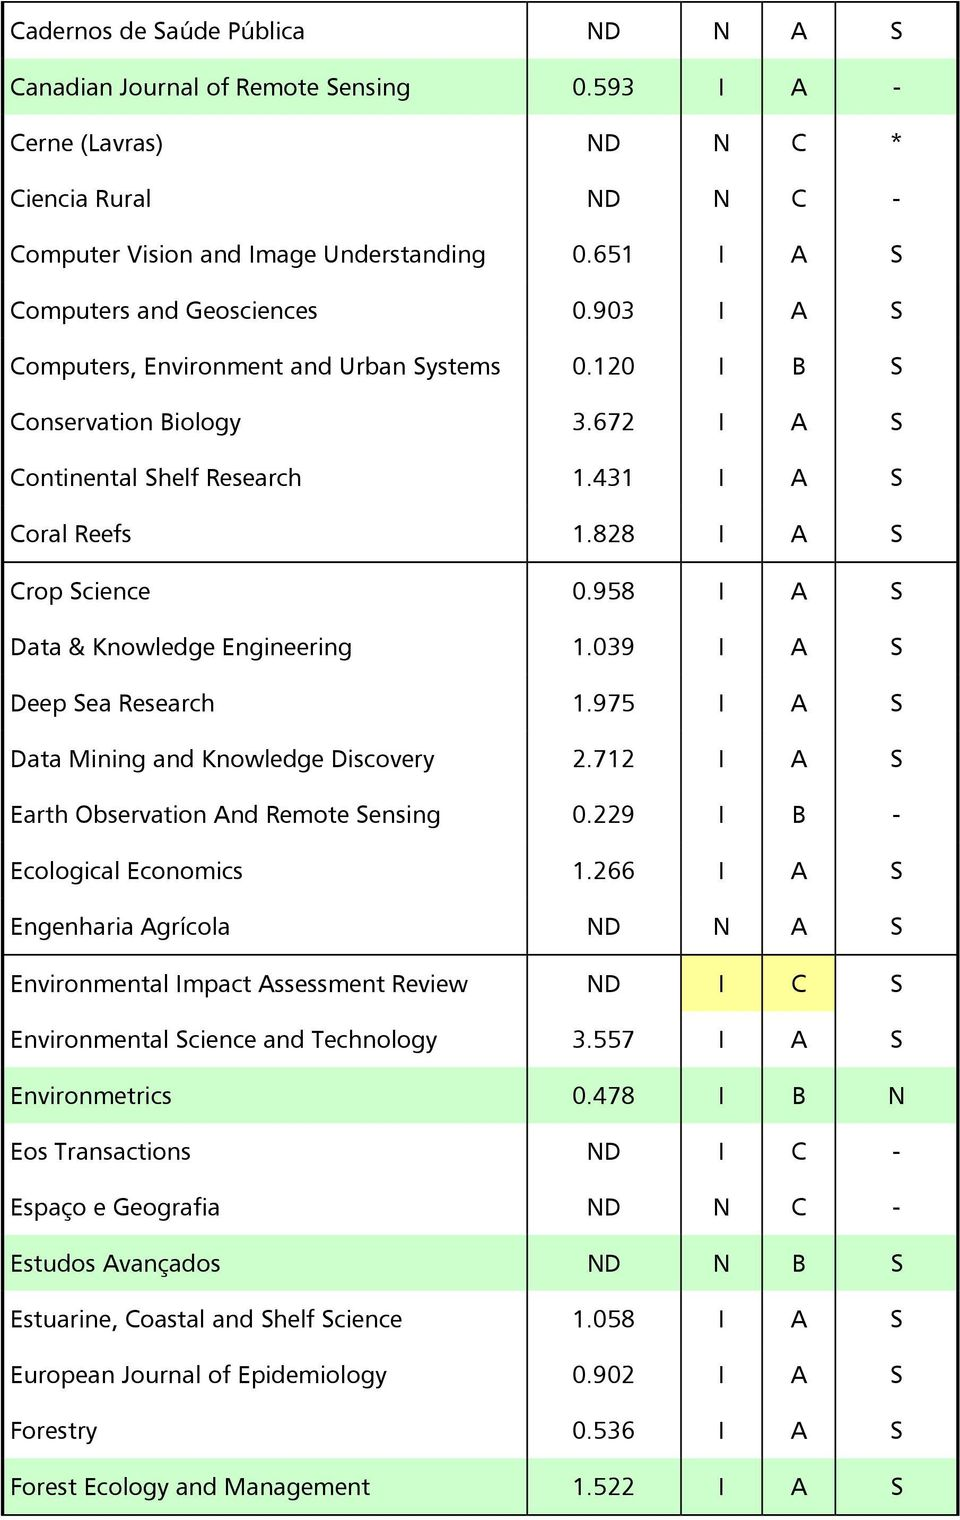 828 I A S Crop Science 0.958 I A S Data & Knowledge Engineering 1.039 I A S Deep Sea Research 1.975 I A S Data Mining and Knowledge Discovery 2.712 I A S Earth Observation And Remote Sensing 0.